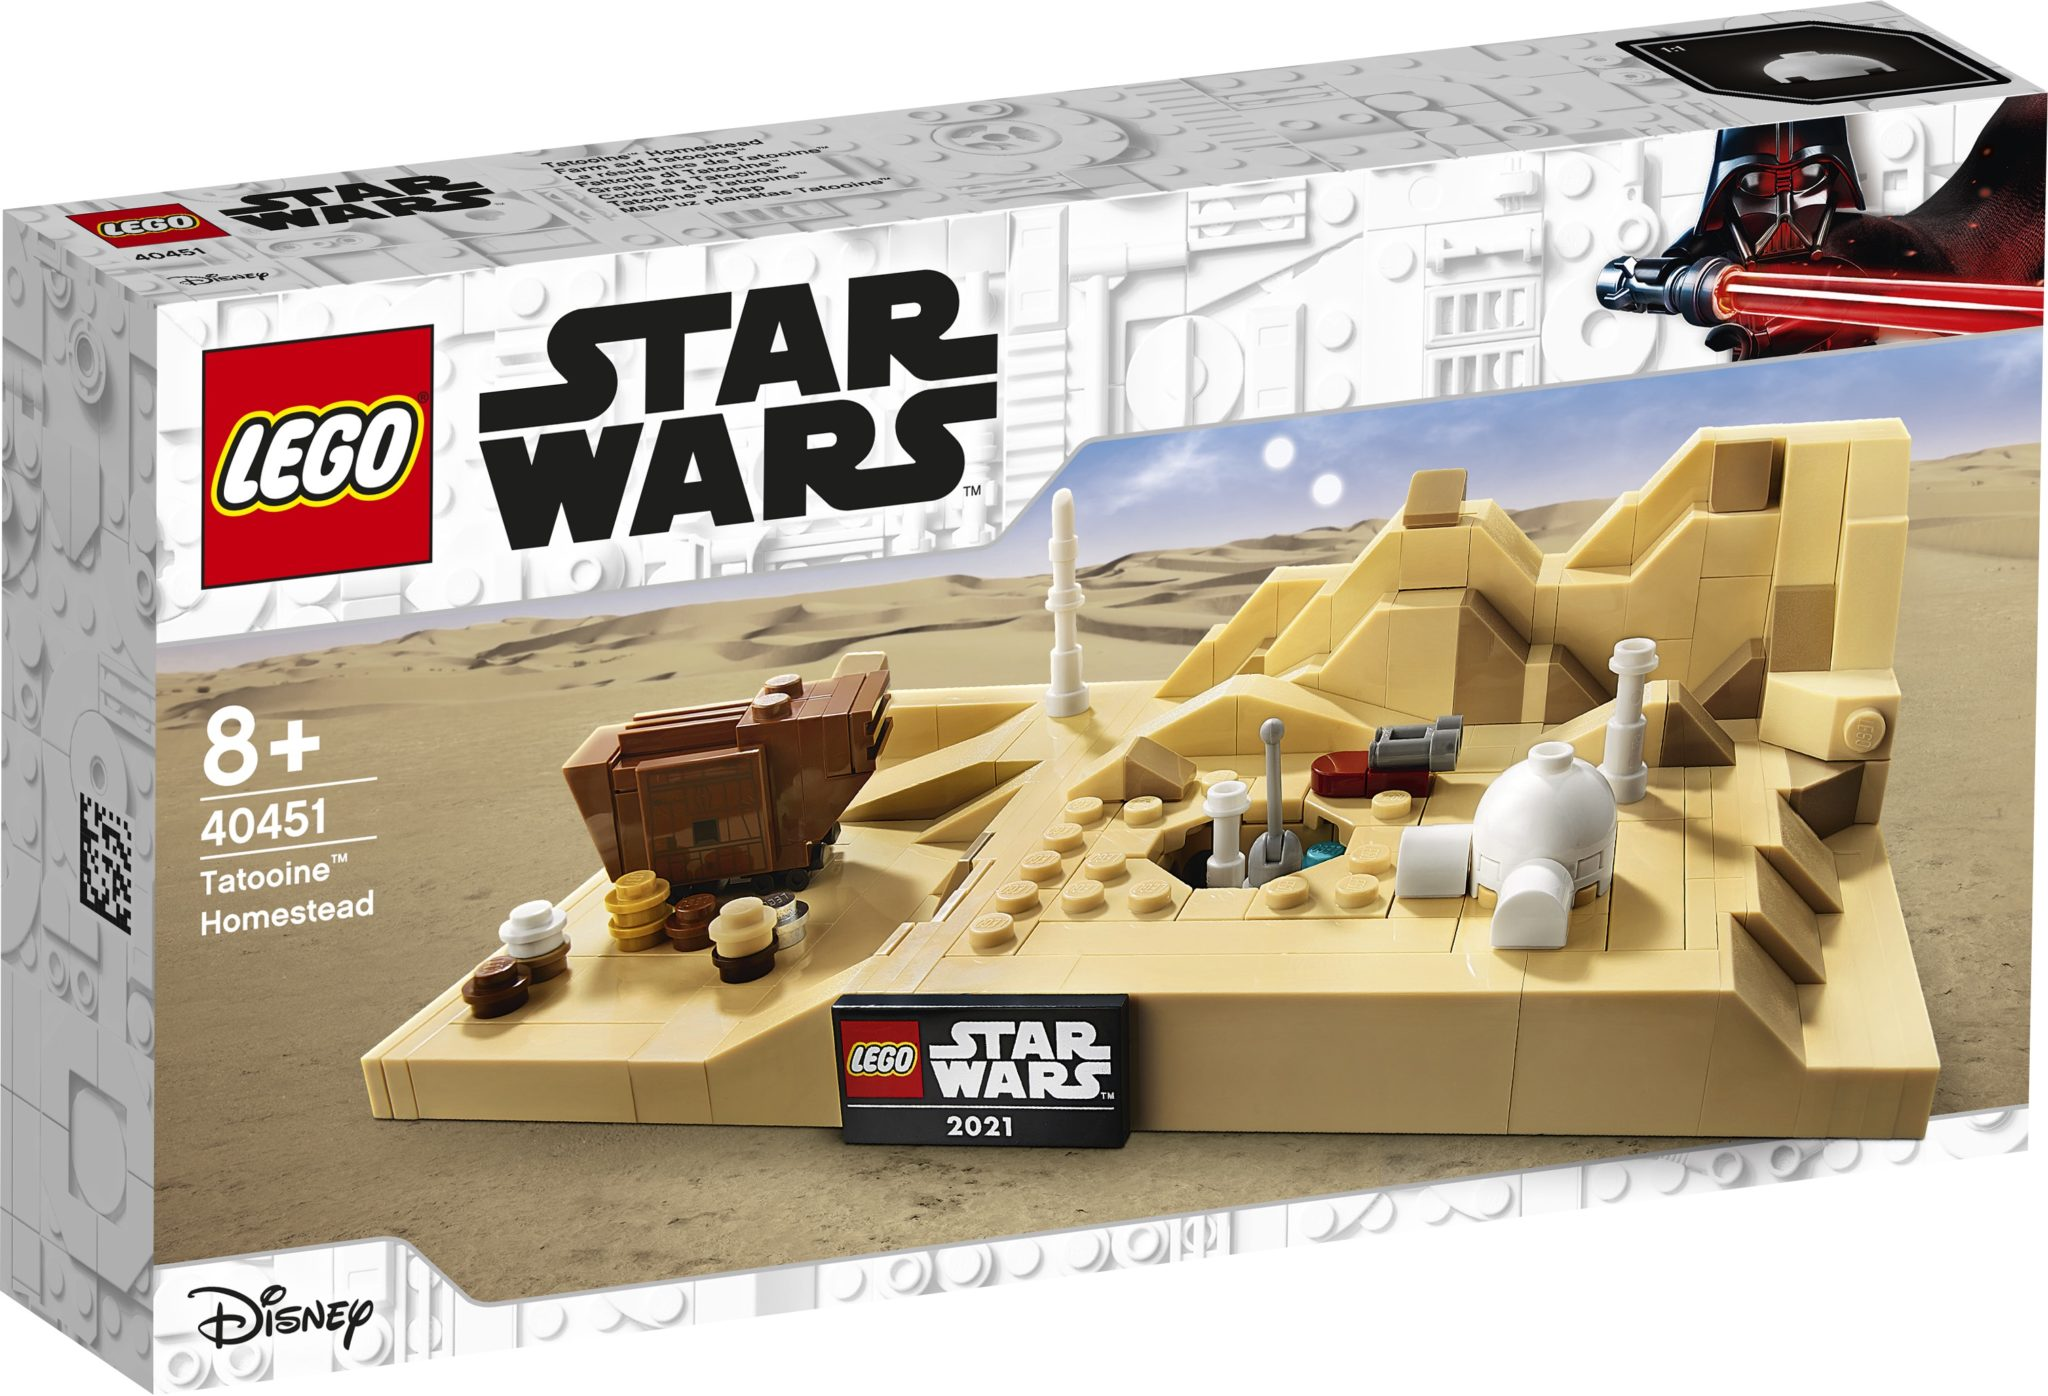 LEGO Star Wars 40451 Tatooine Homestead 1